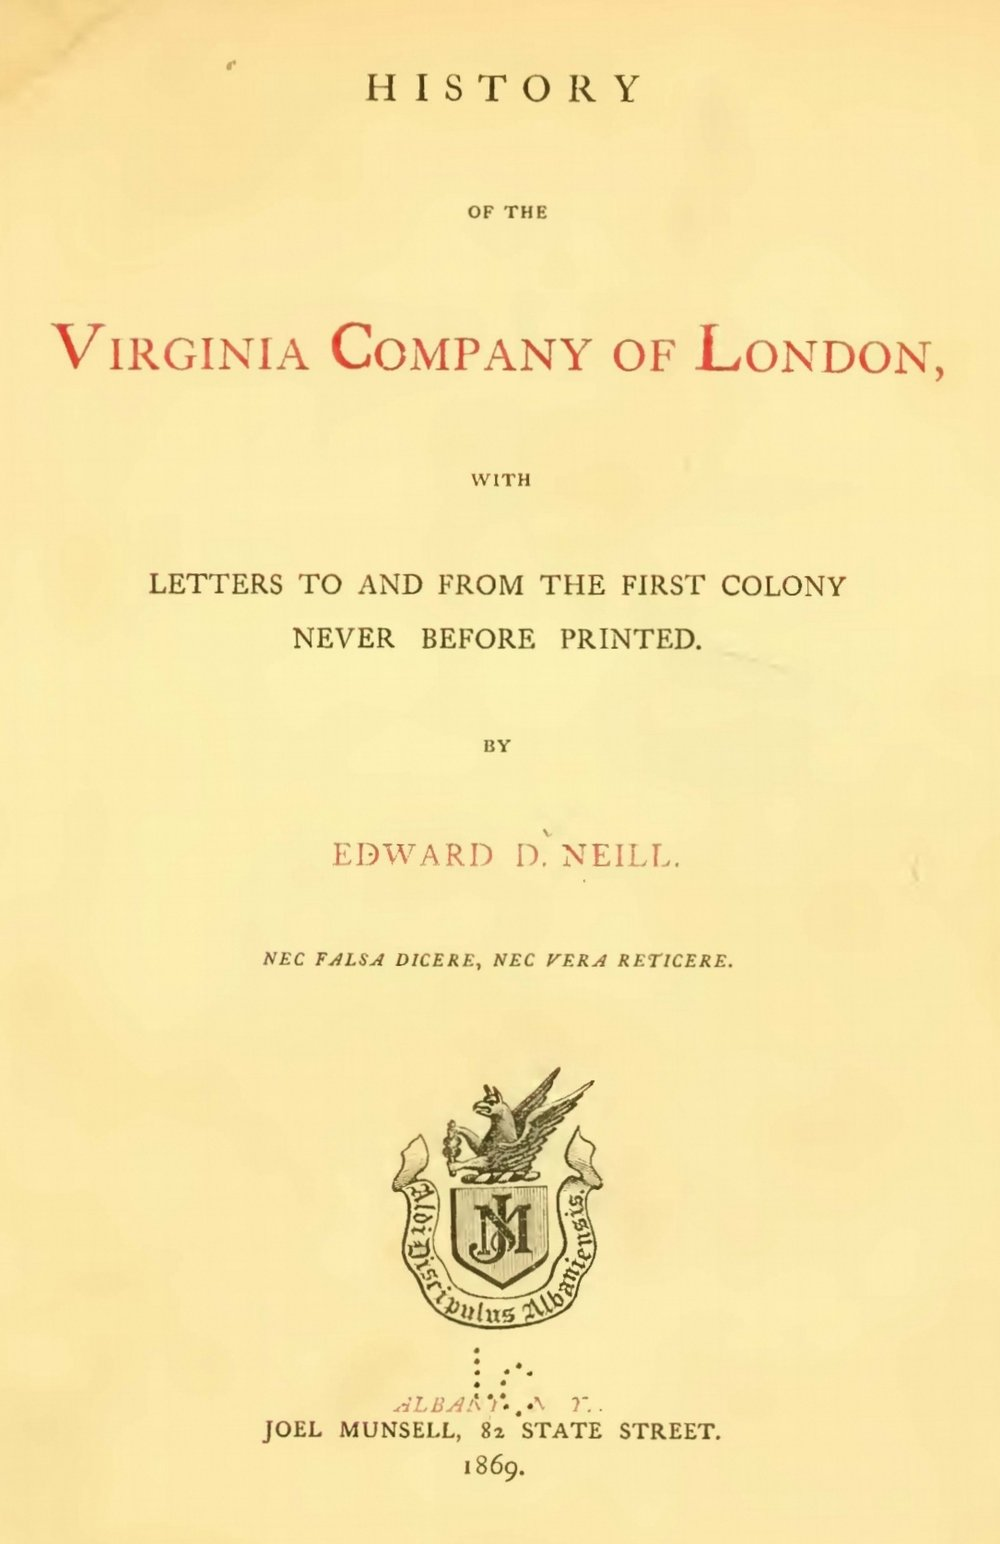 Neill, Edward Duffield, History of the Virginia Company of London Title Page.jpg